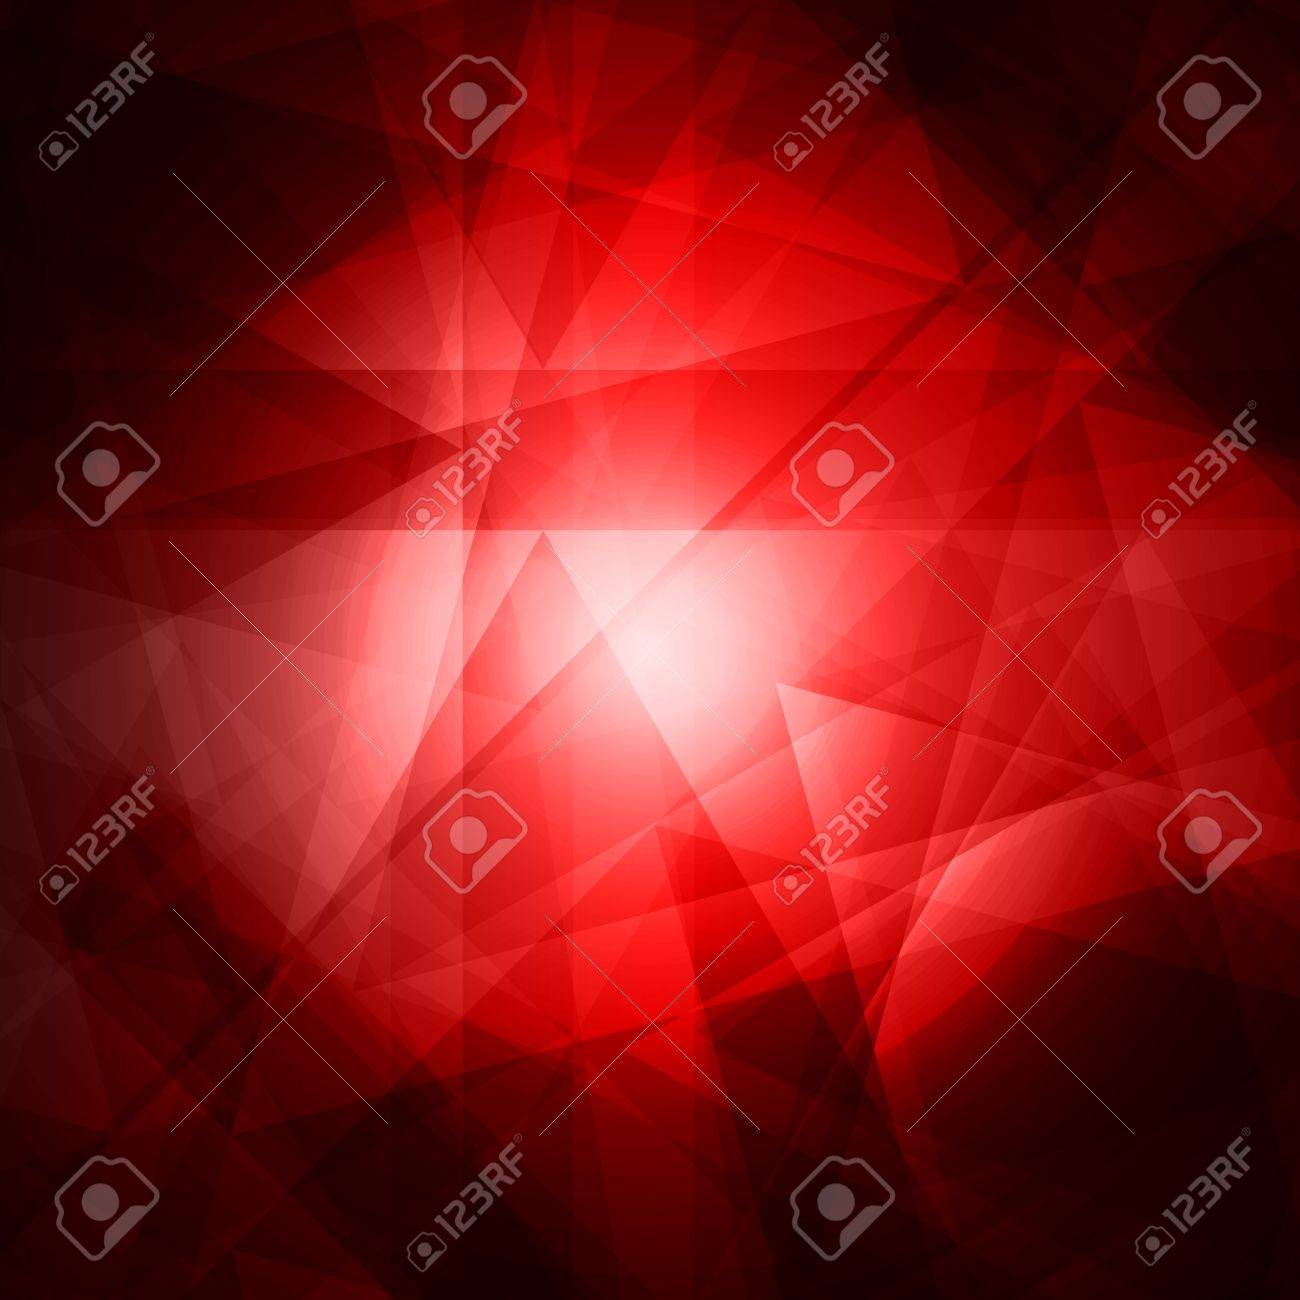 Abstract red background for design illustration Stock Vector - 14425753